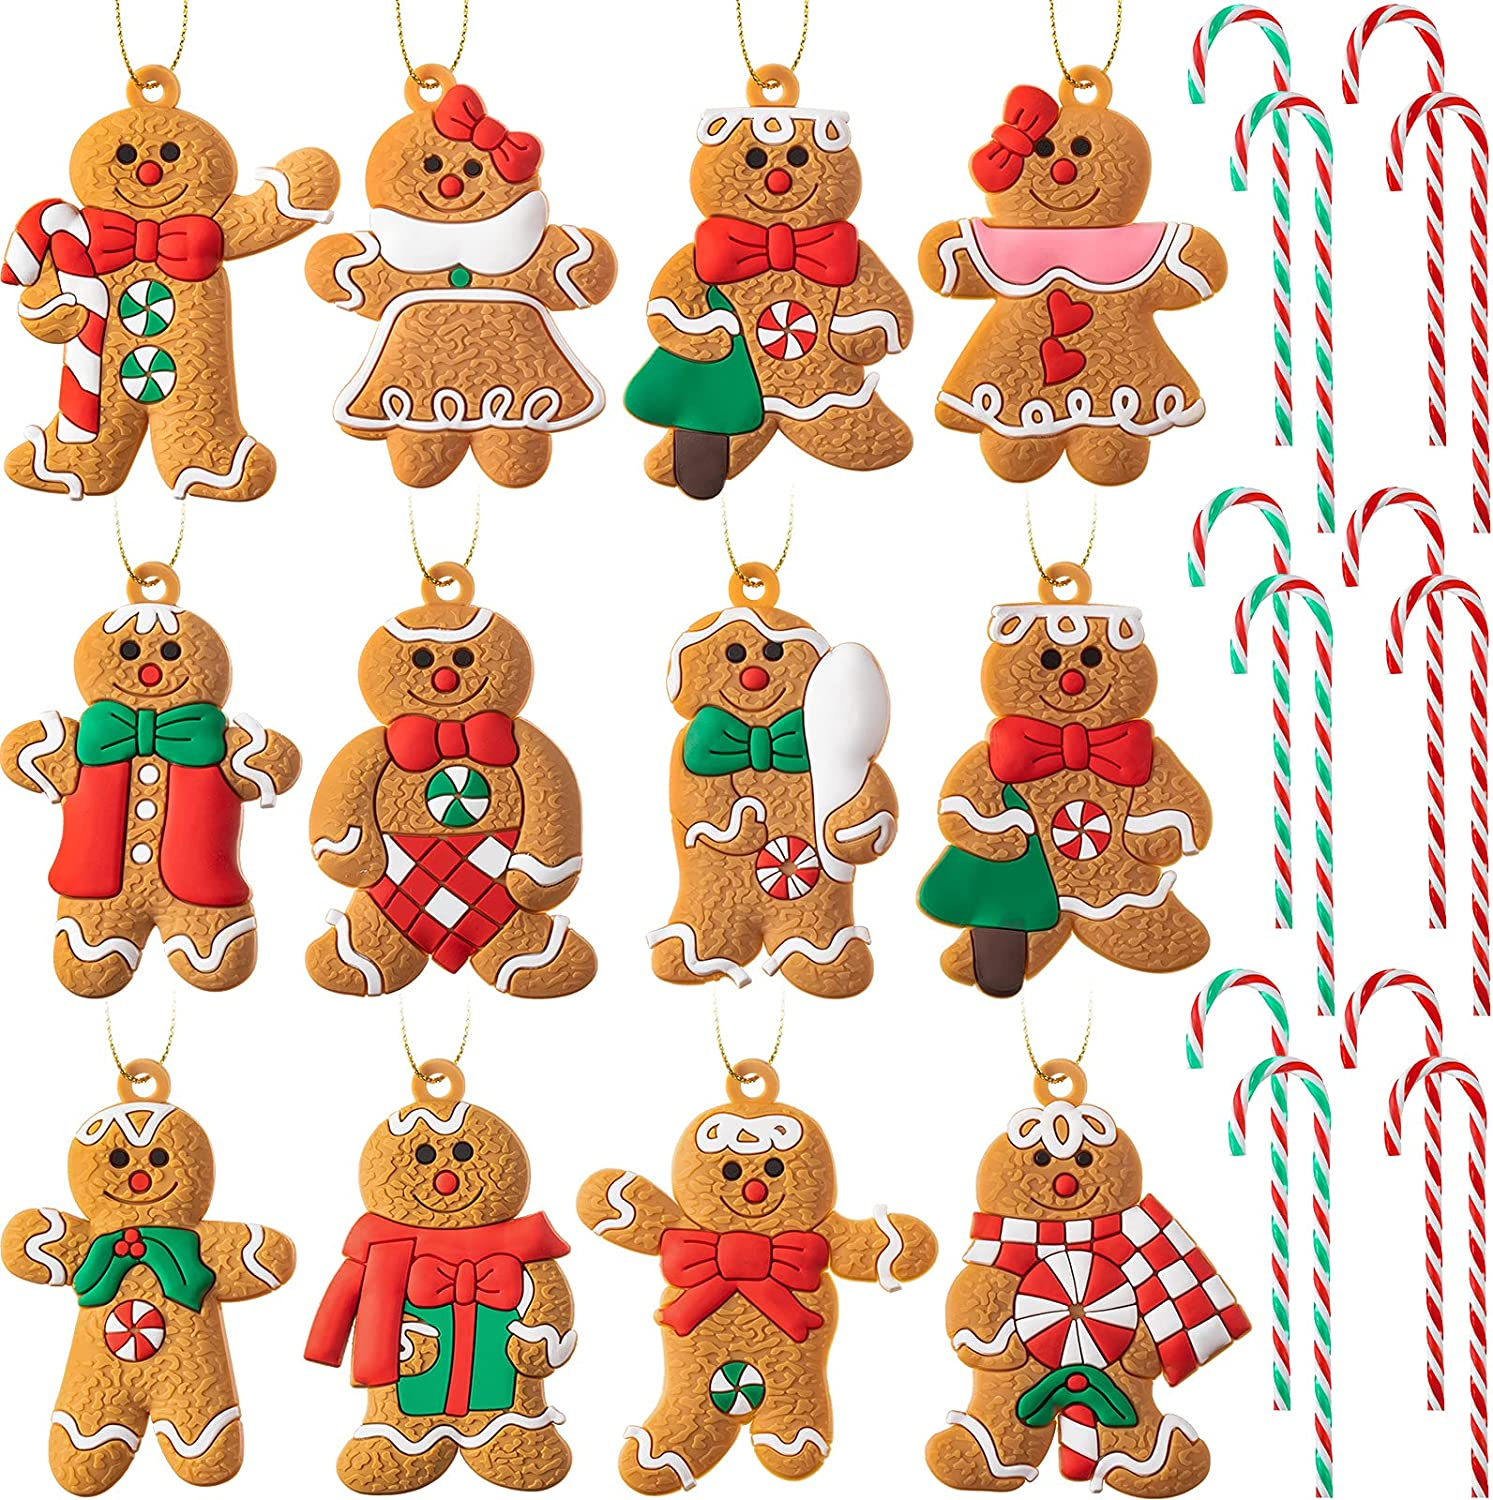 24 Pieces Christmas Candy Canes and Gingerbread Man Ornaments Acrylic Candy Canes Christmas Gingerbread Hanging Ornament Christmas Tree Hanging Decorations for Christmas Tree Home and Party Decor